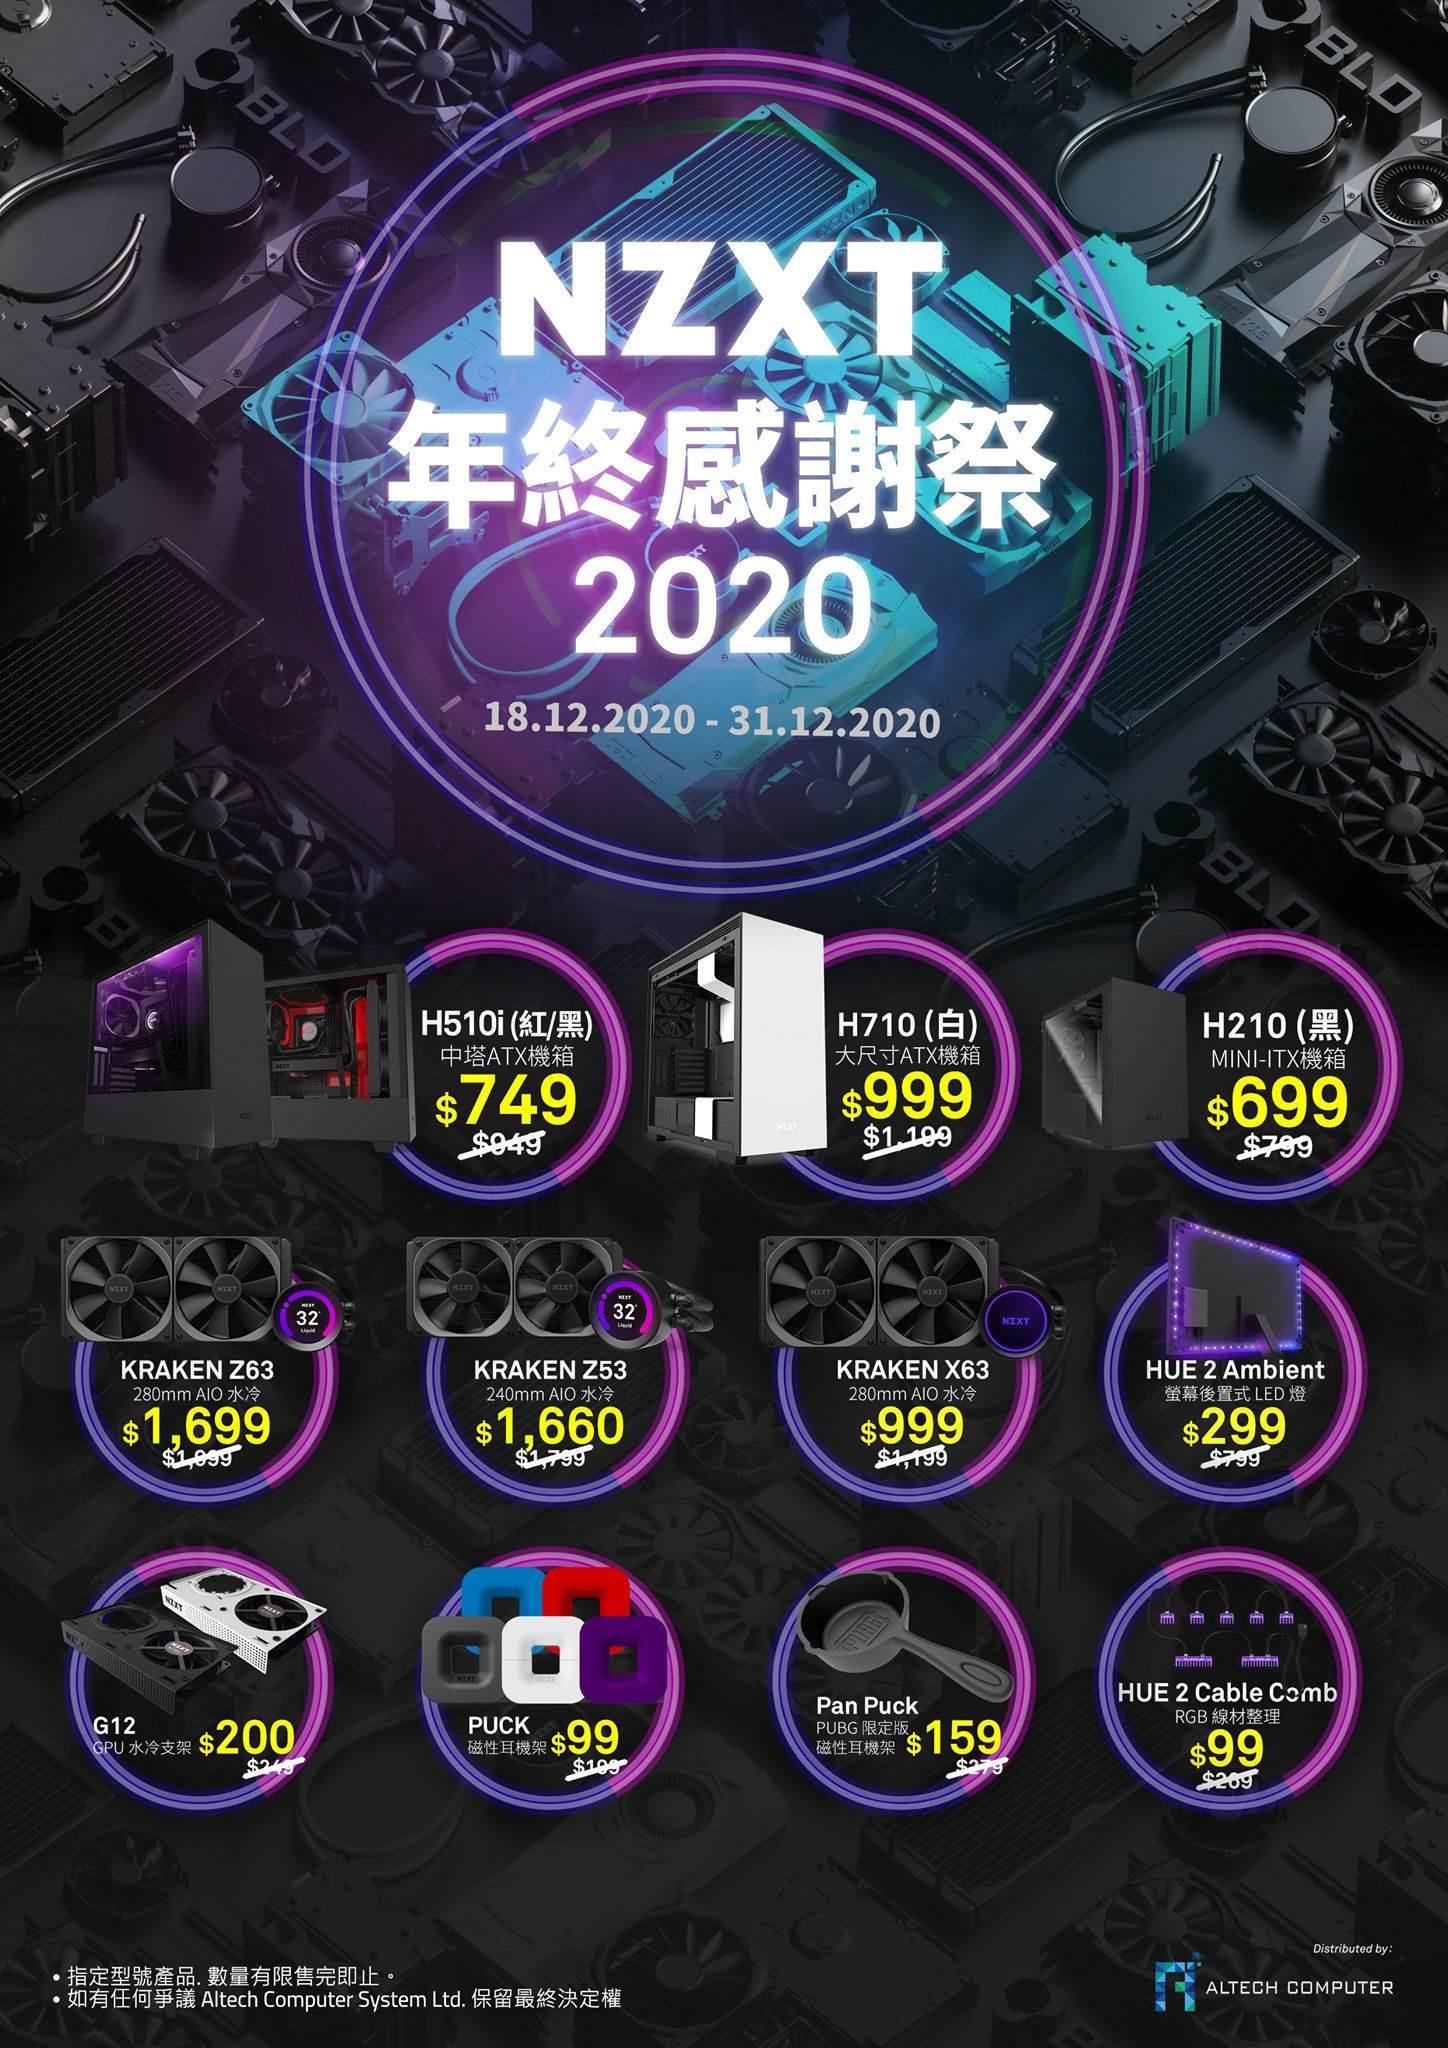 NZXT Year End Final Promotion